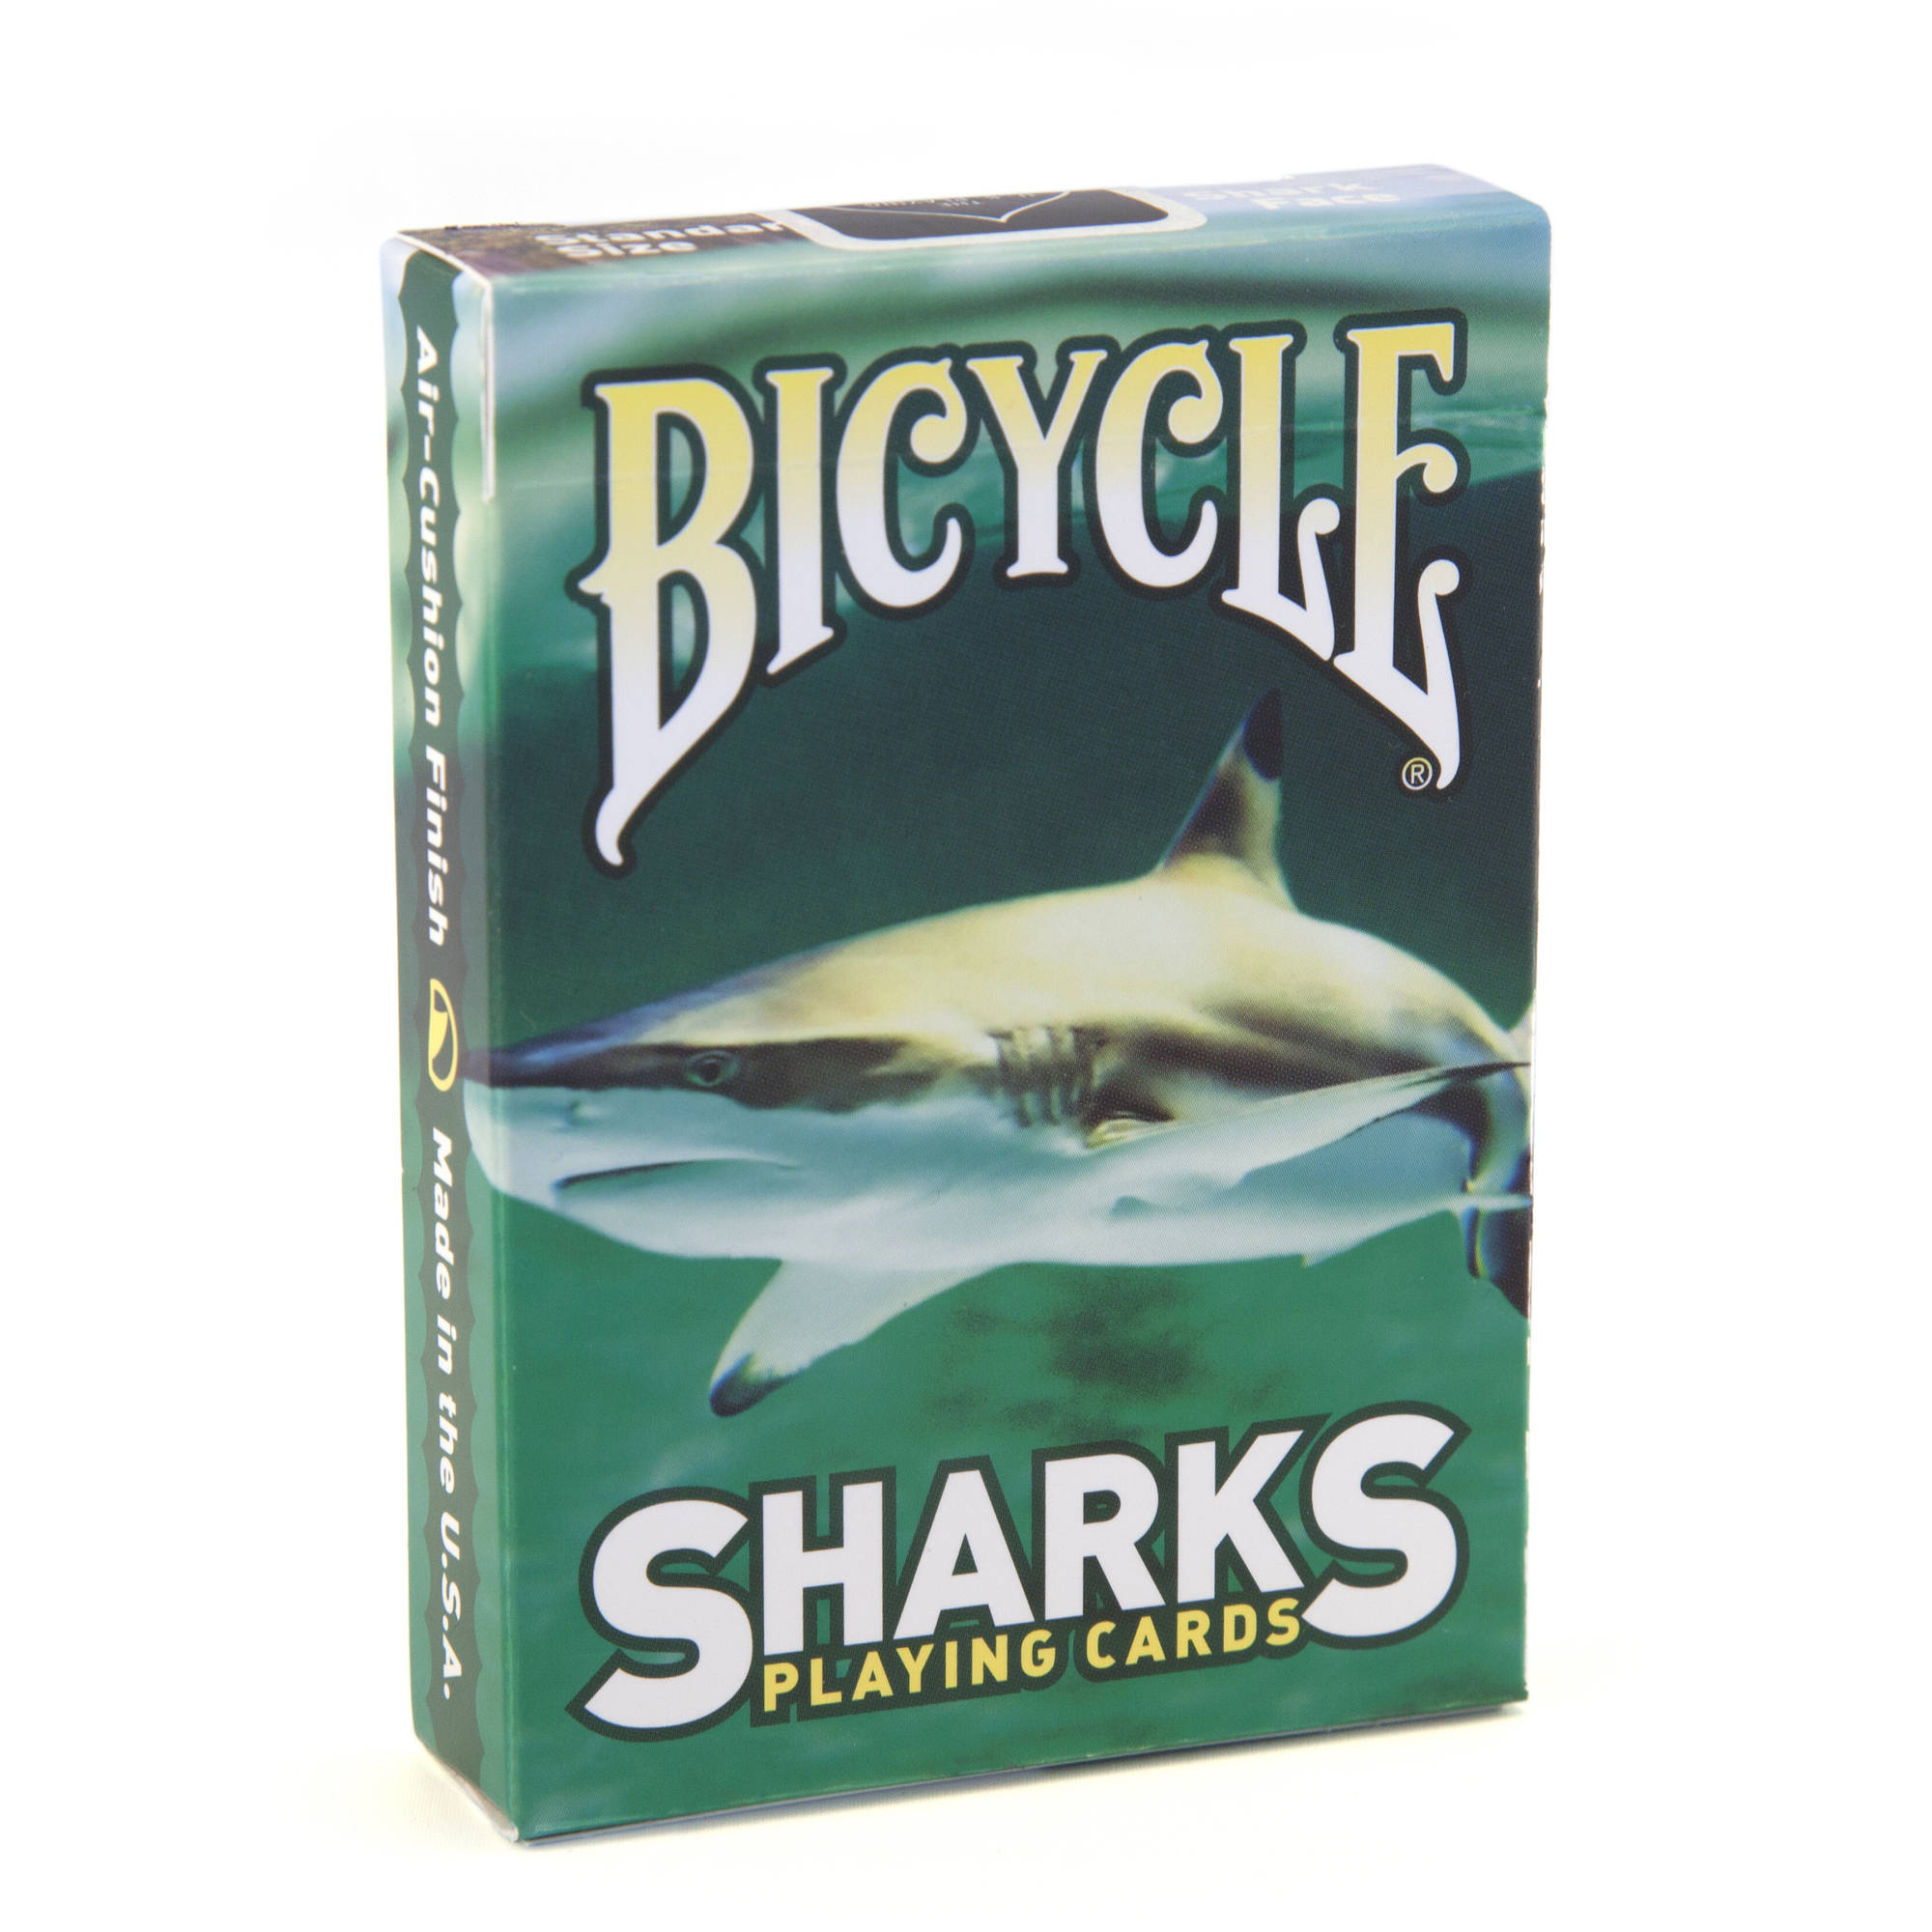 Bicycle Sharks Green Playing Cards